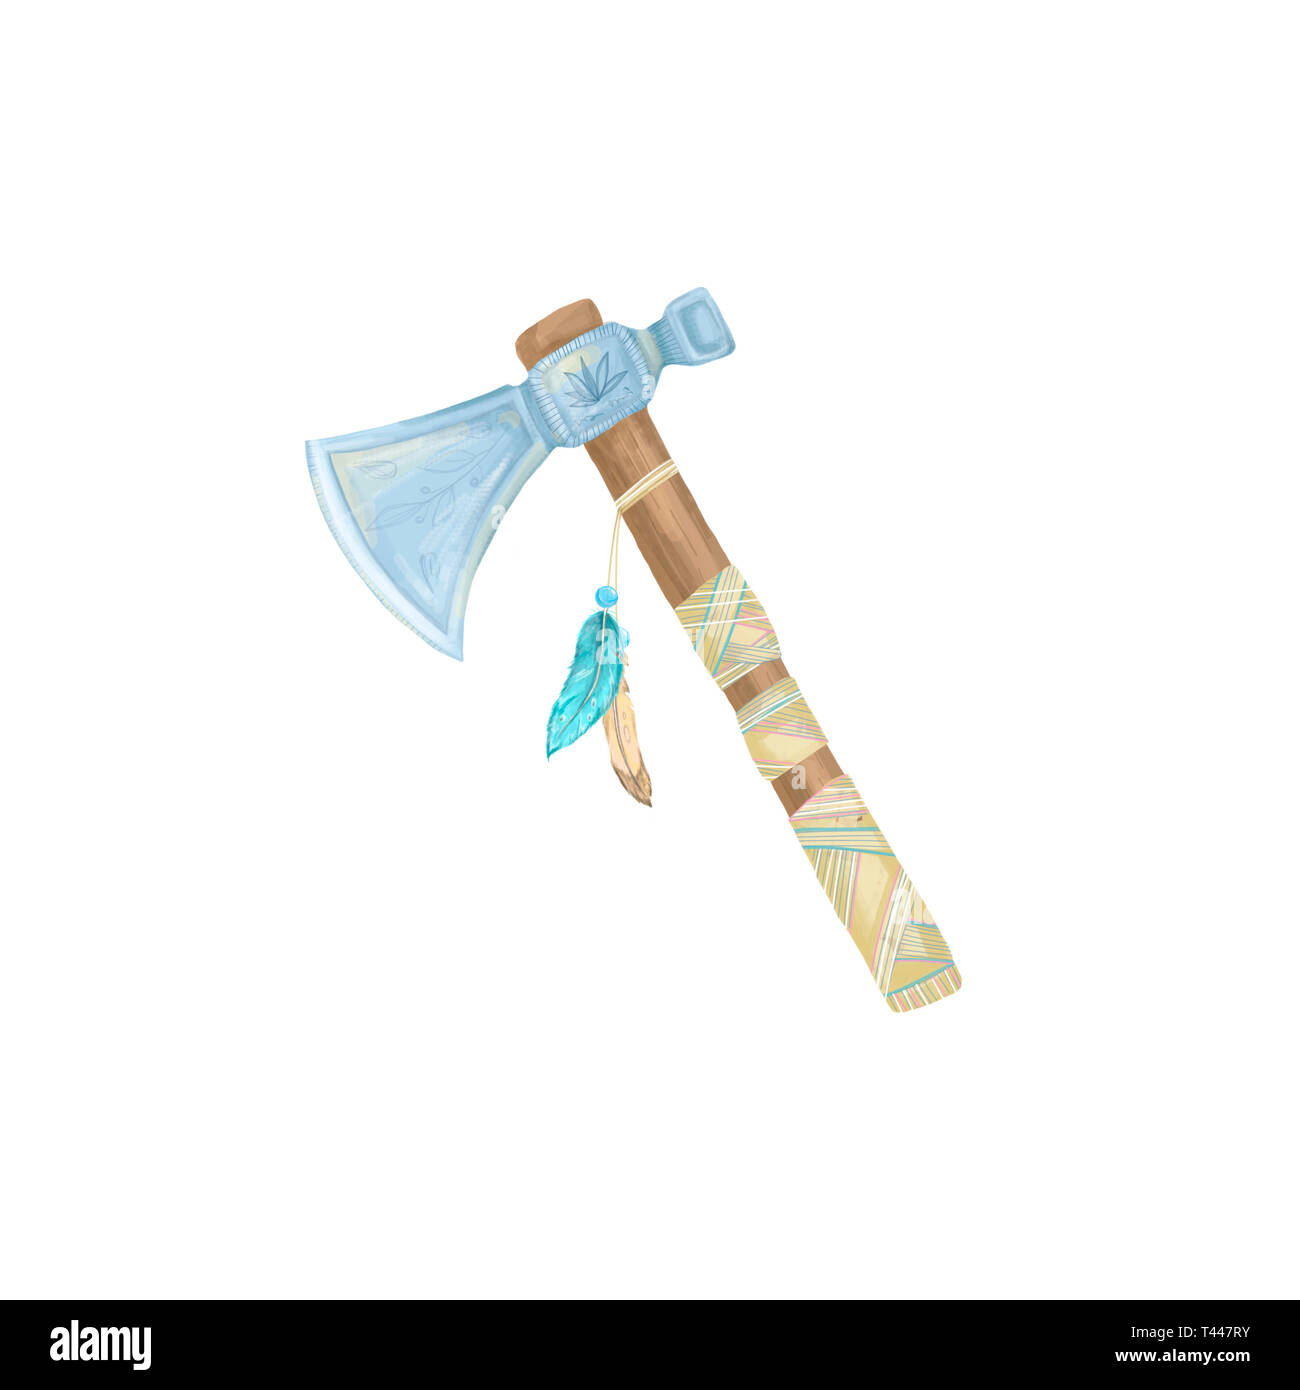 Axe indian digital art illustration axe with fethers amulet tribal weapon geometric white background - Stock Image